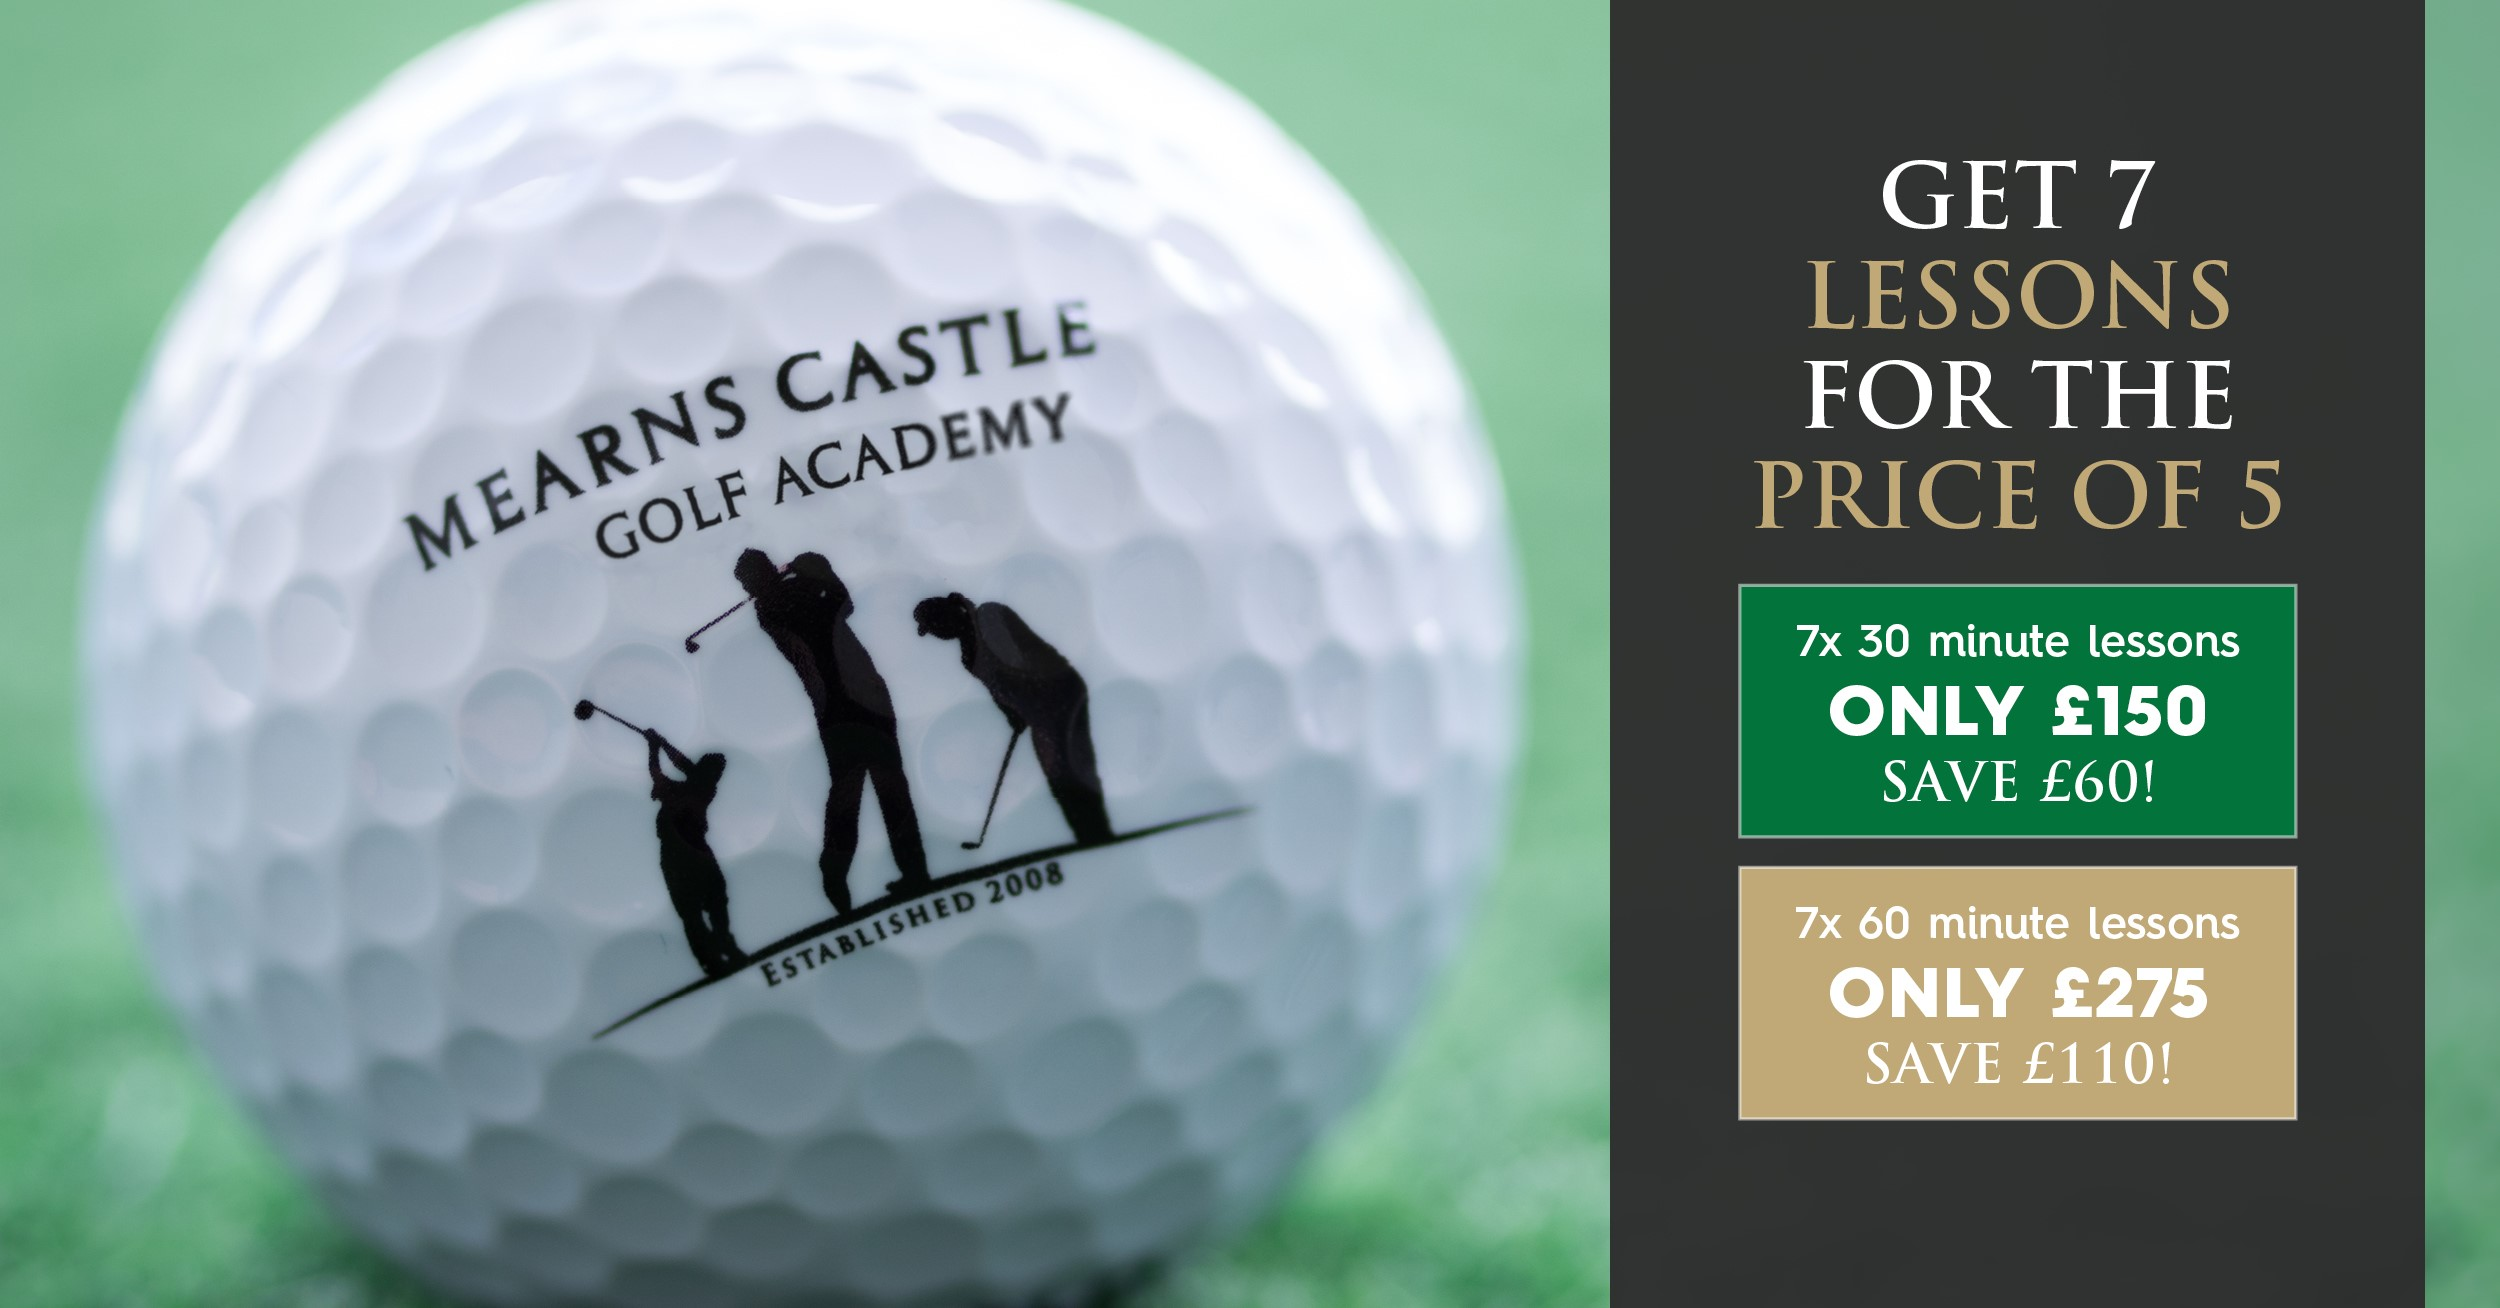 7 for 5 on all golf lessons